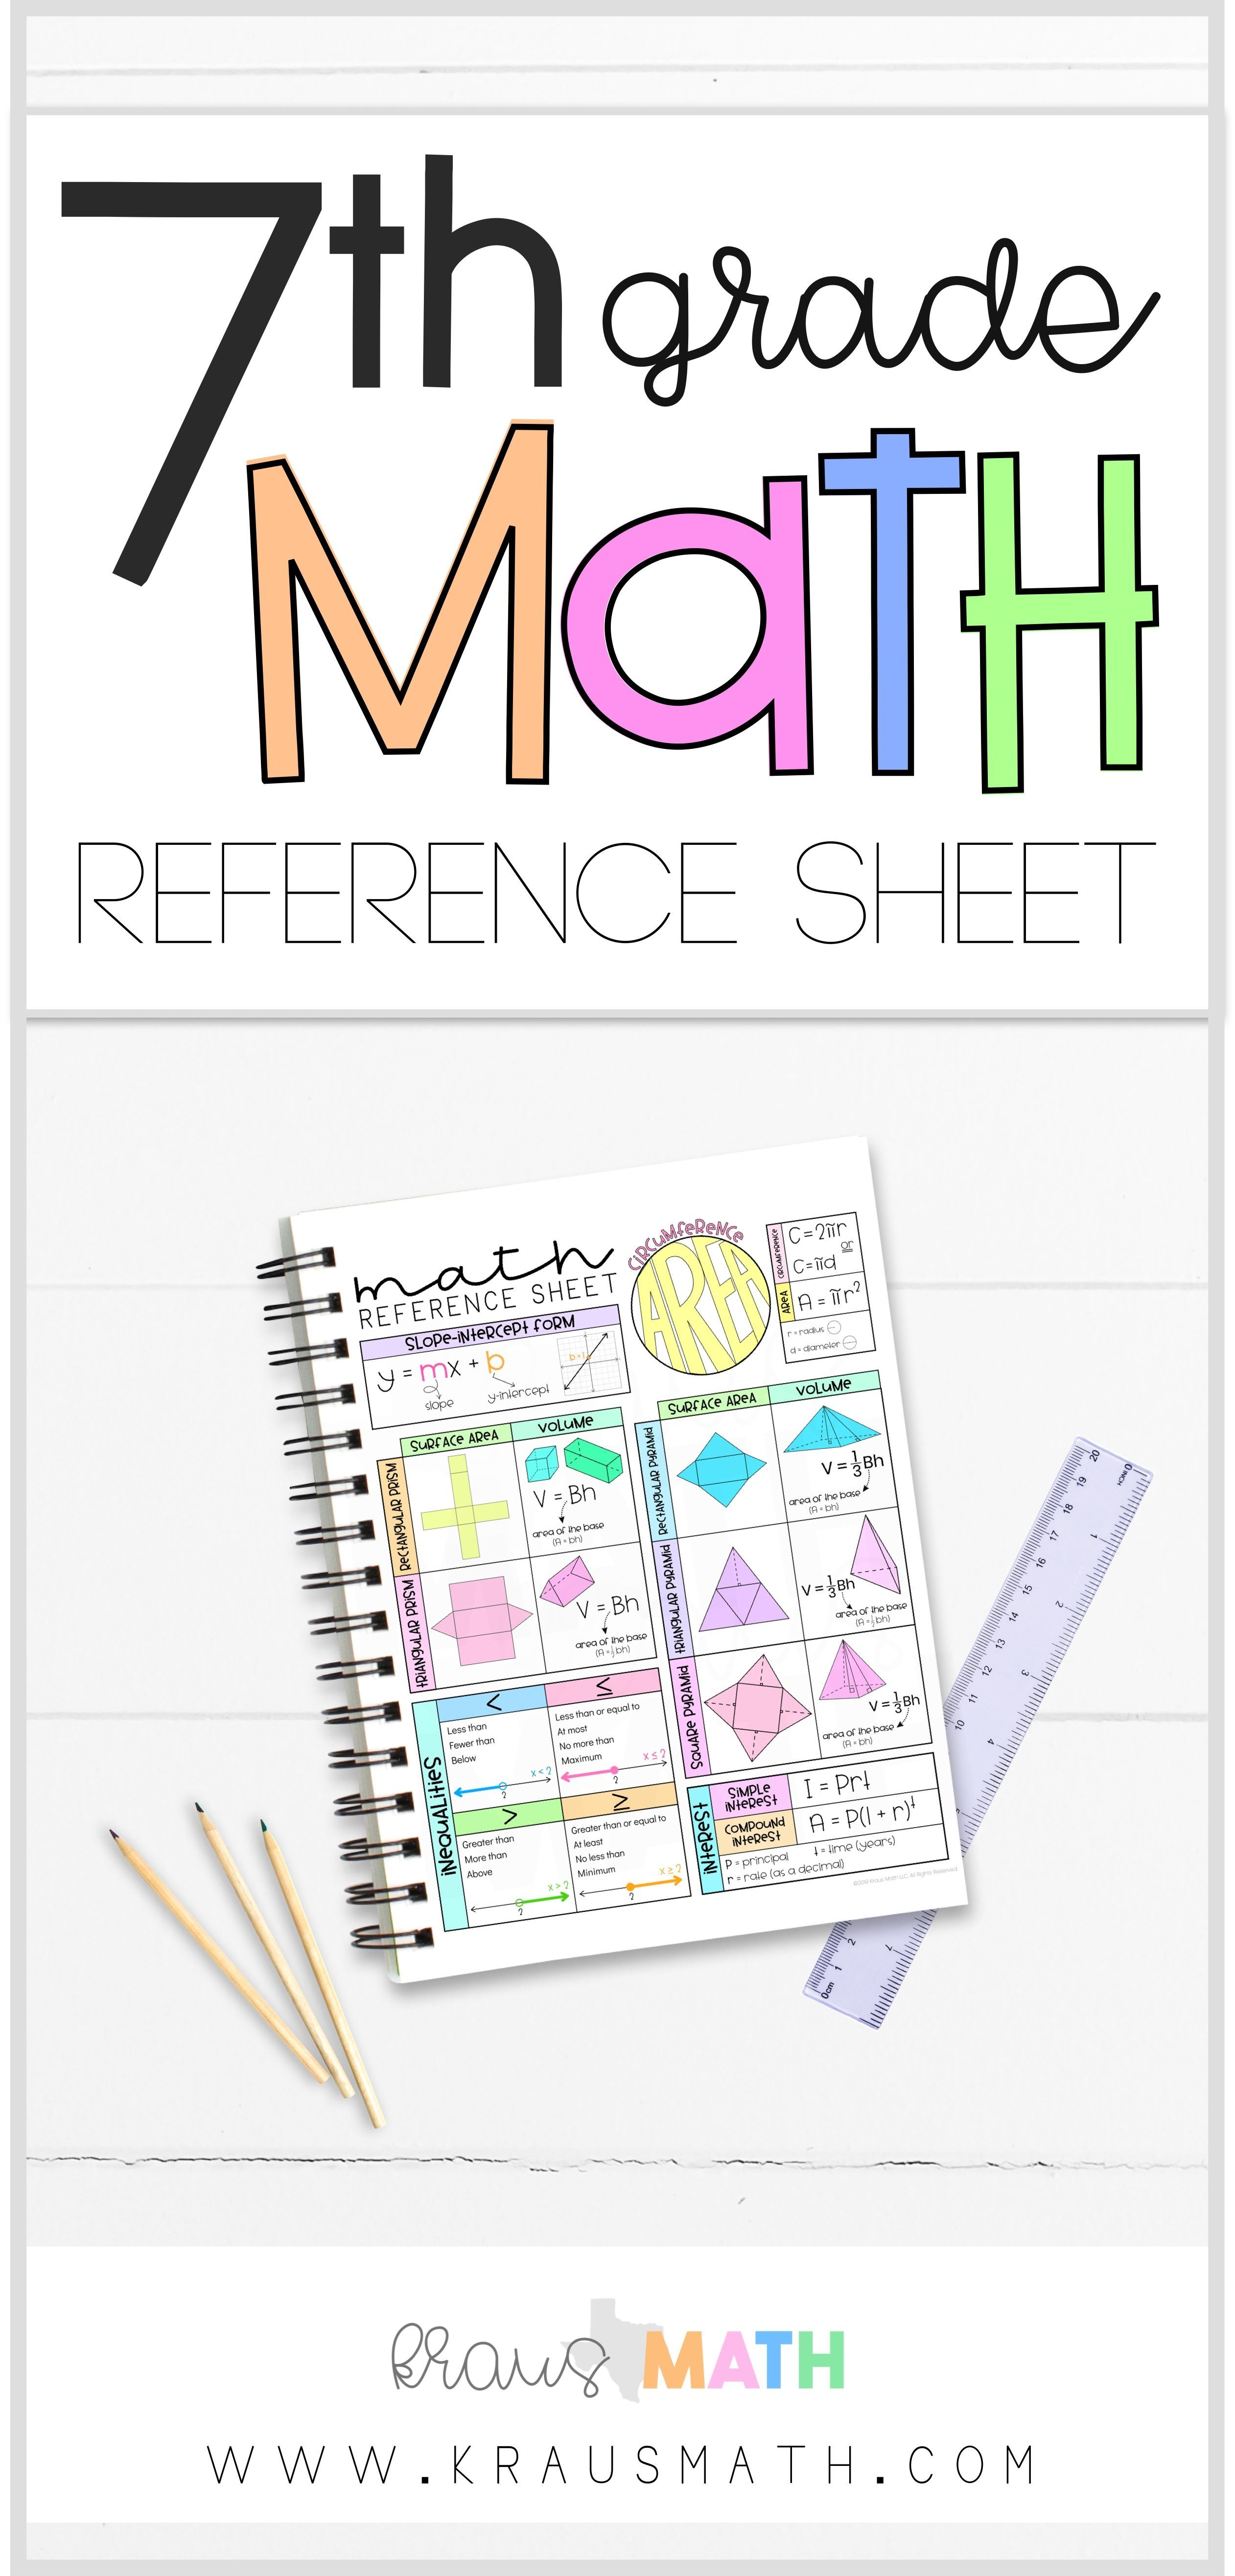 Reference Sheet For 7th Grade Math